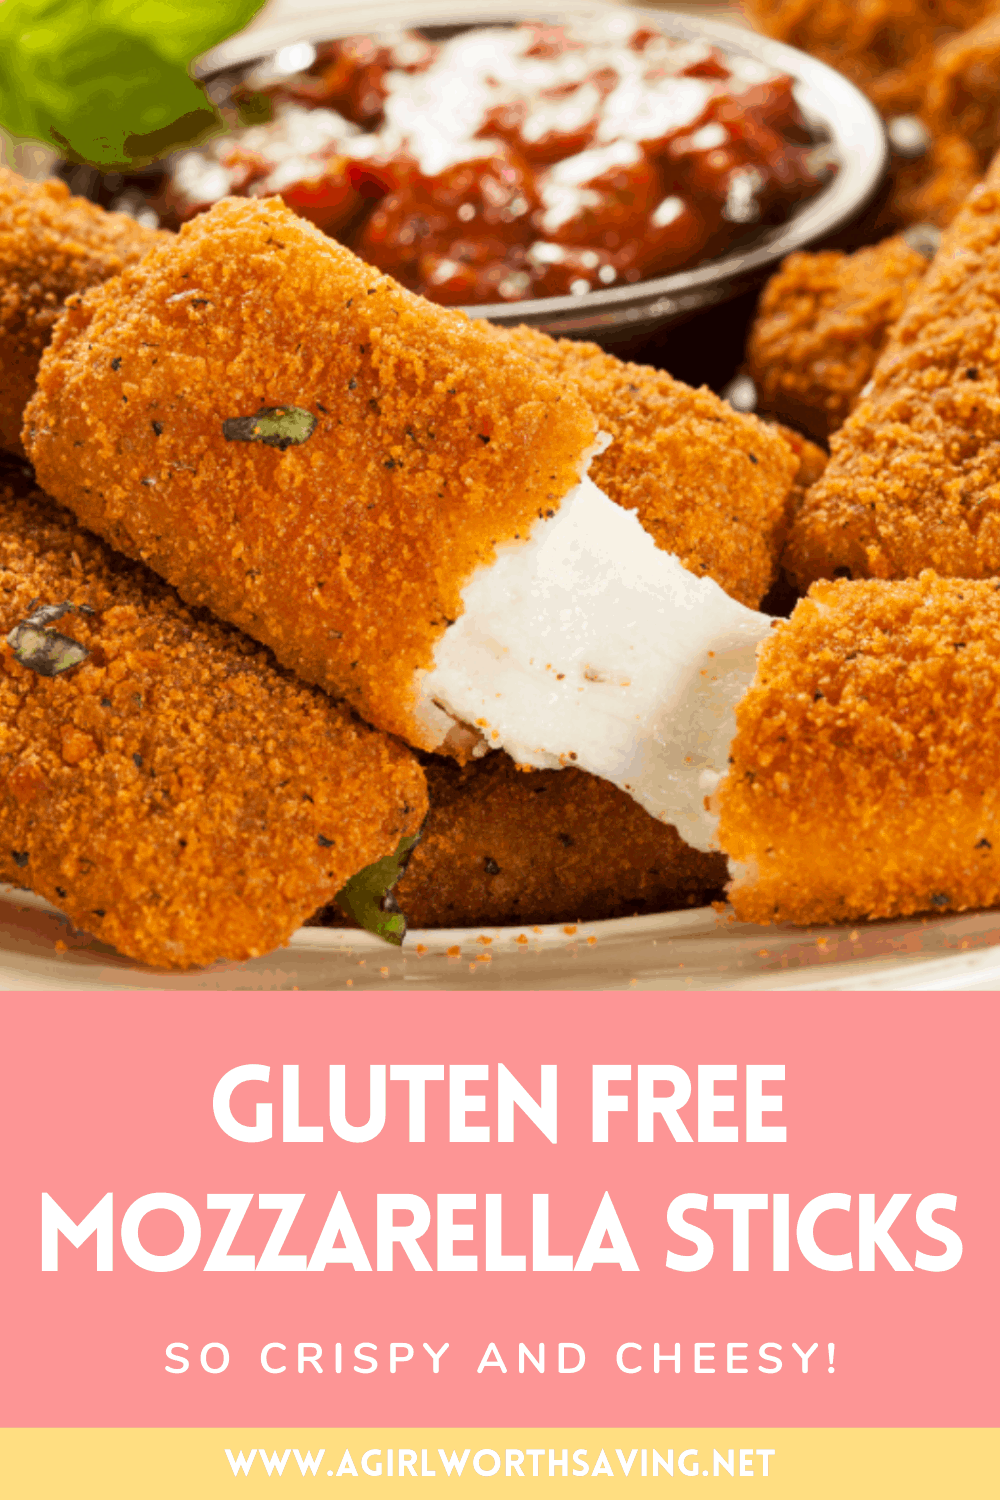 These gluten free mozzarella sticks are so cheesy and crispy, you'll have a hard time believing they're actually homemade!